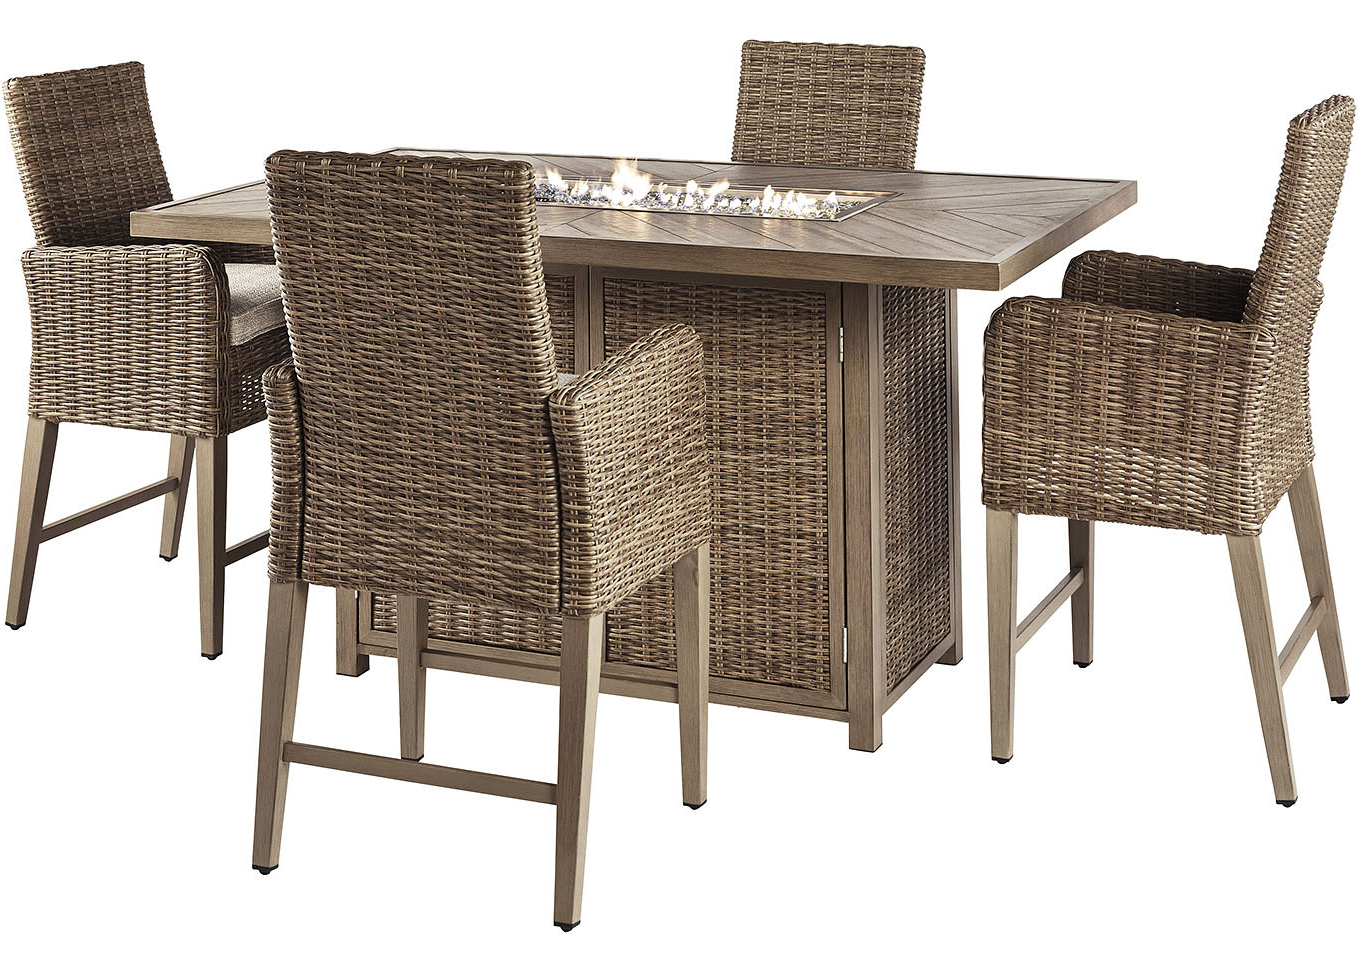 Preferred Ashley Furniture Homestore – Independently Owned And Operated Regarding Berrios 3 Piece Counter Height Dining Sets (View 17 of 25)